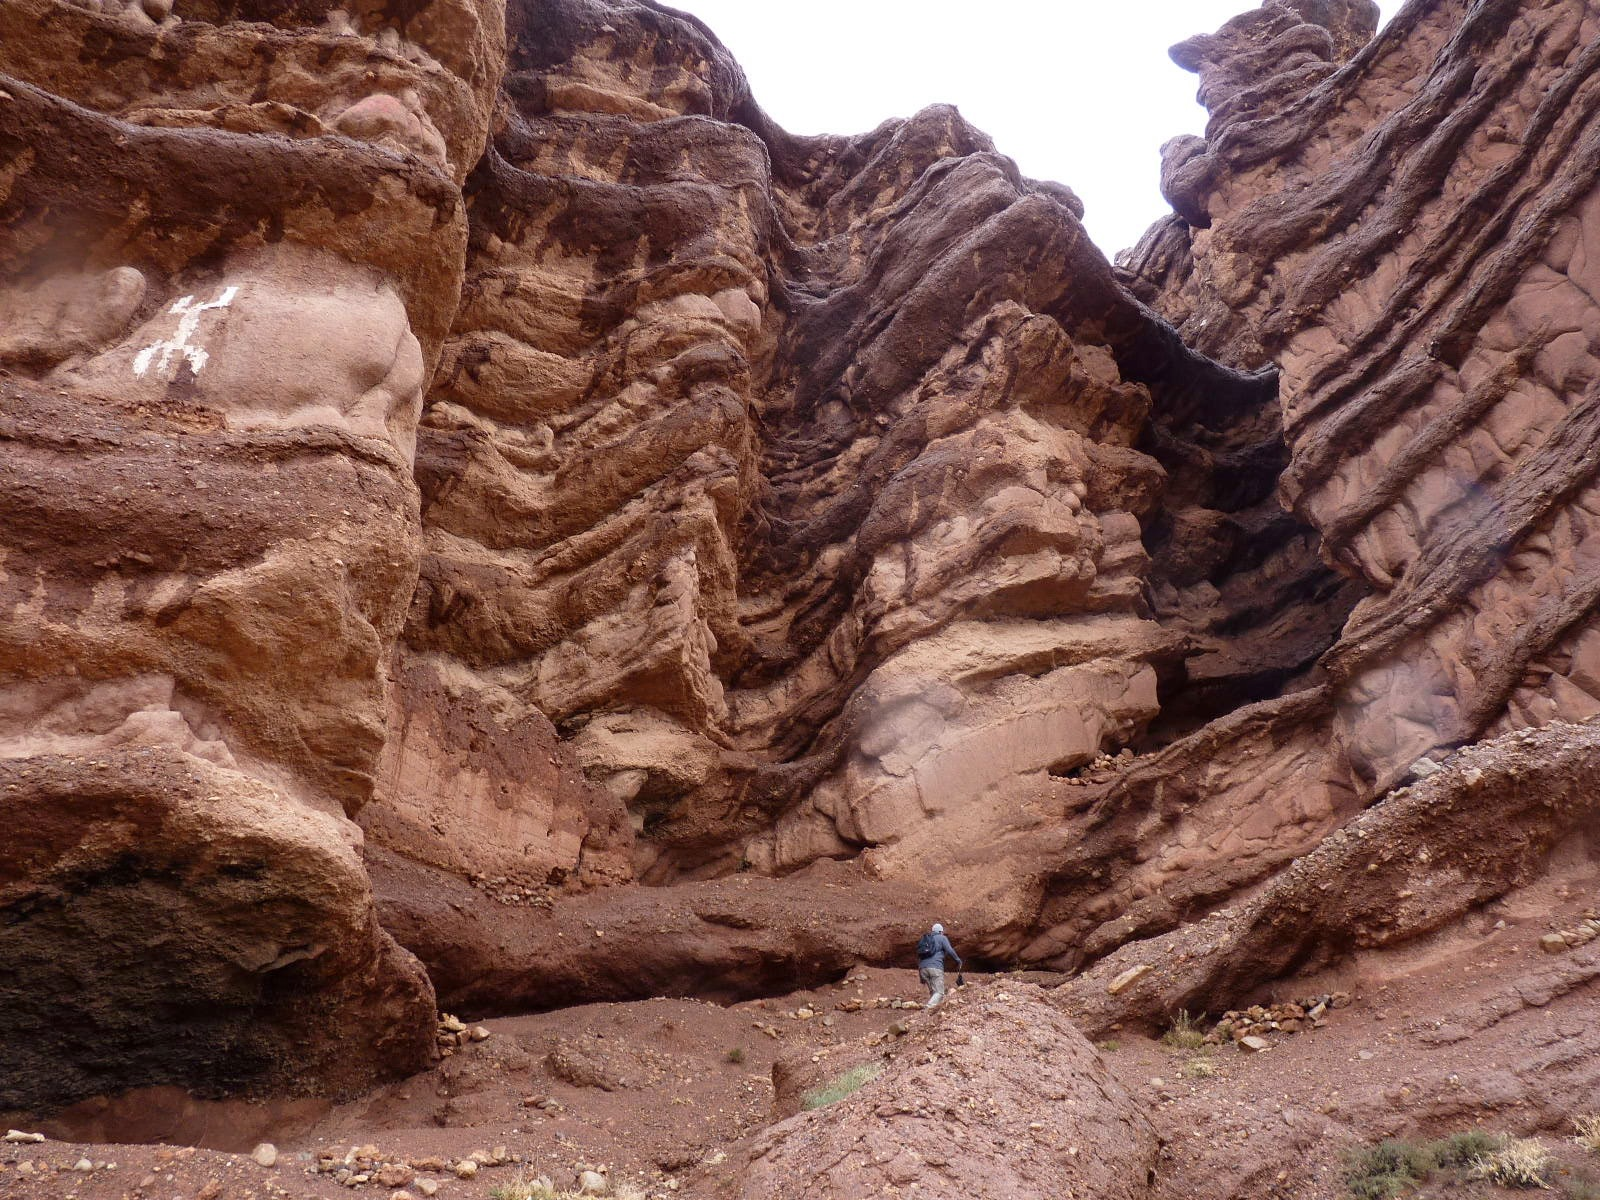 Tiny Jon in the Dades Gorge